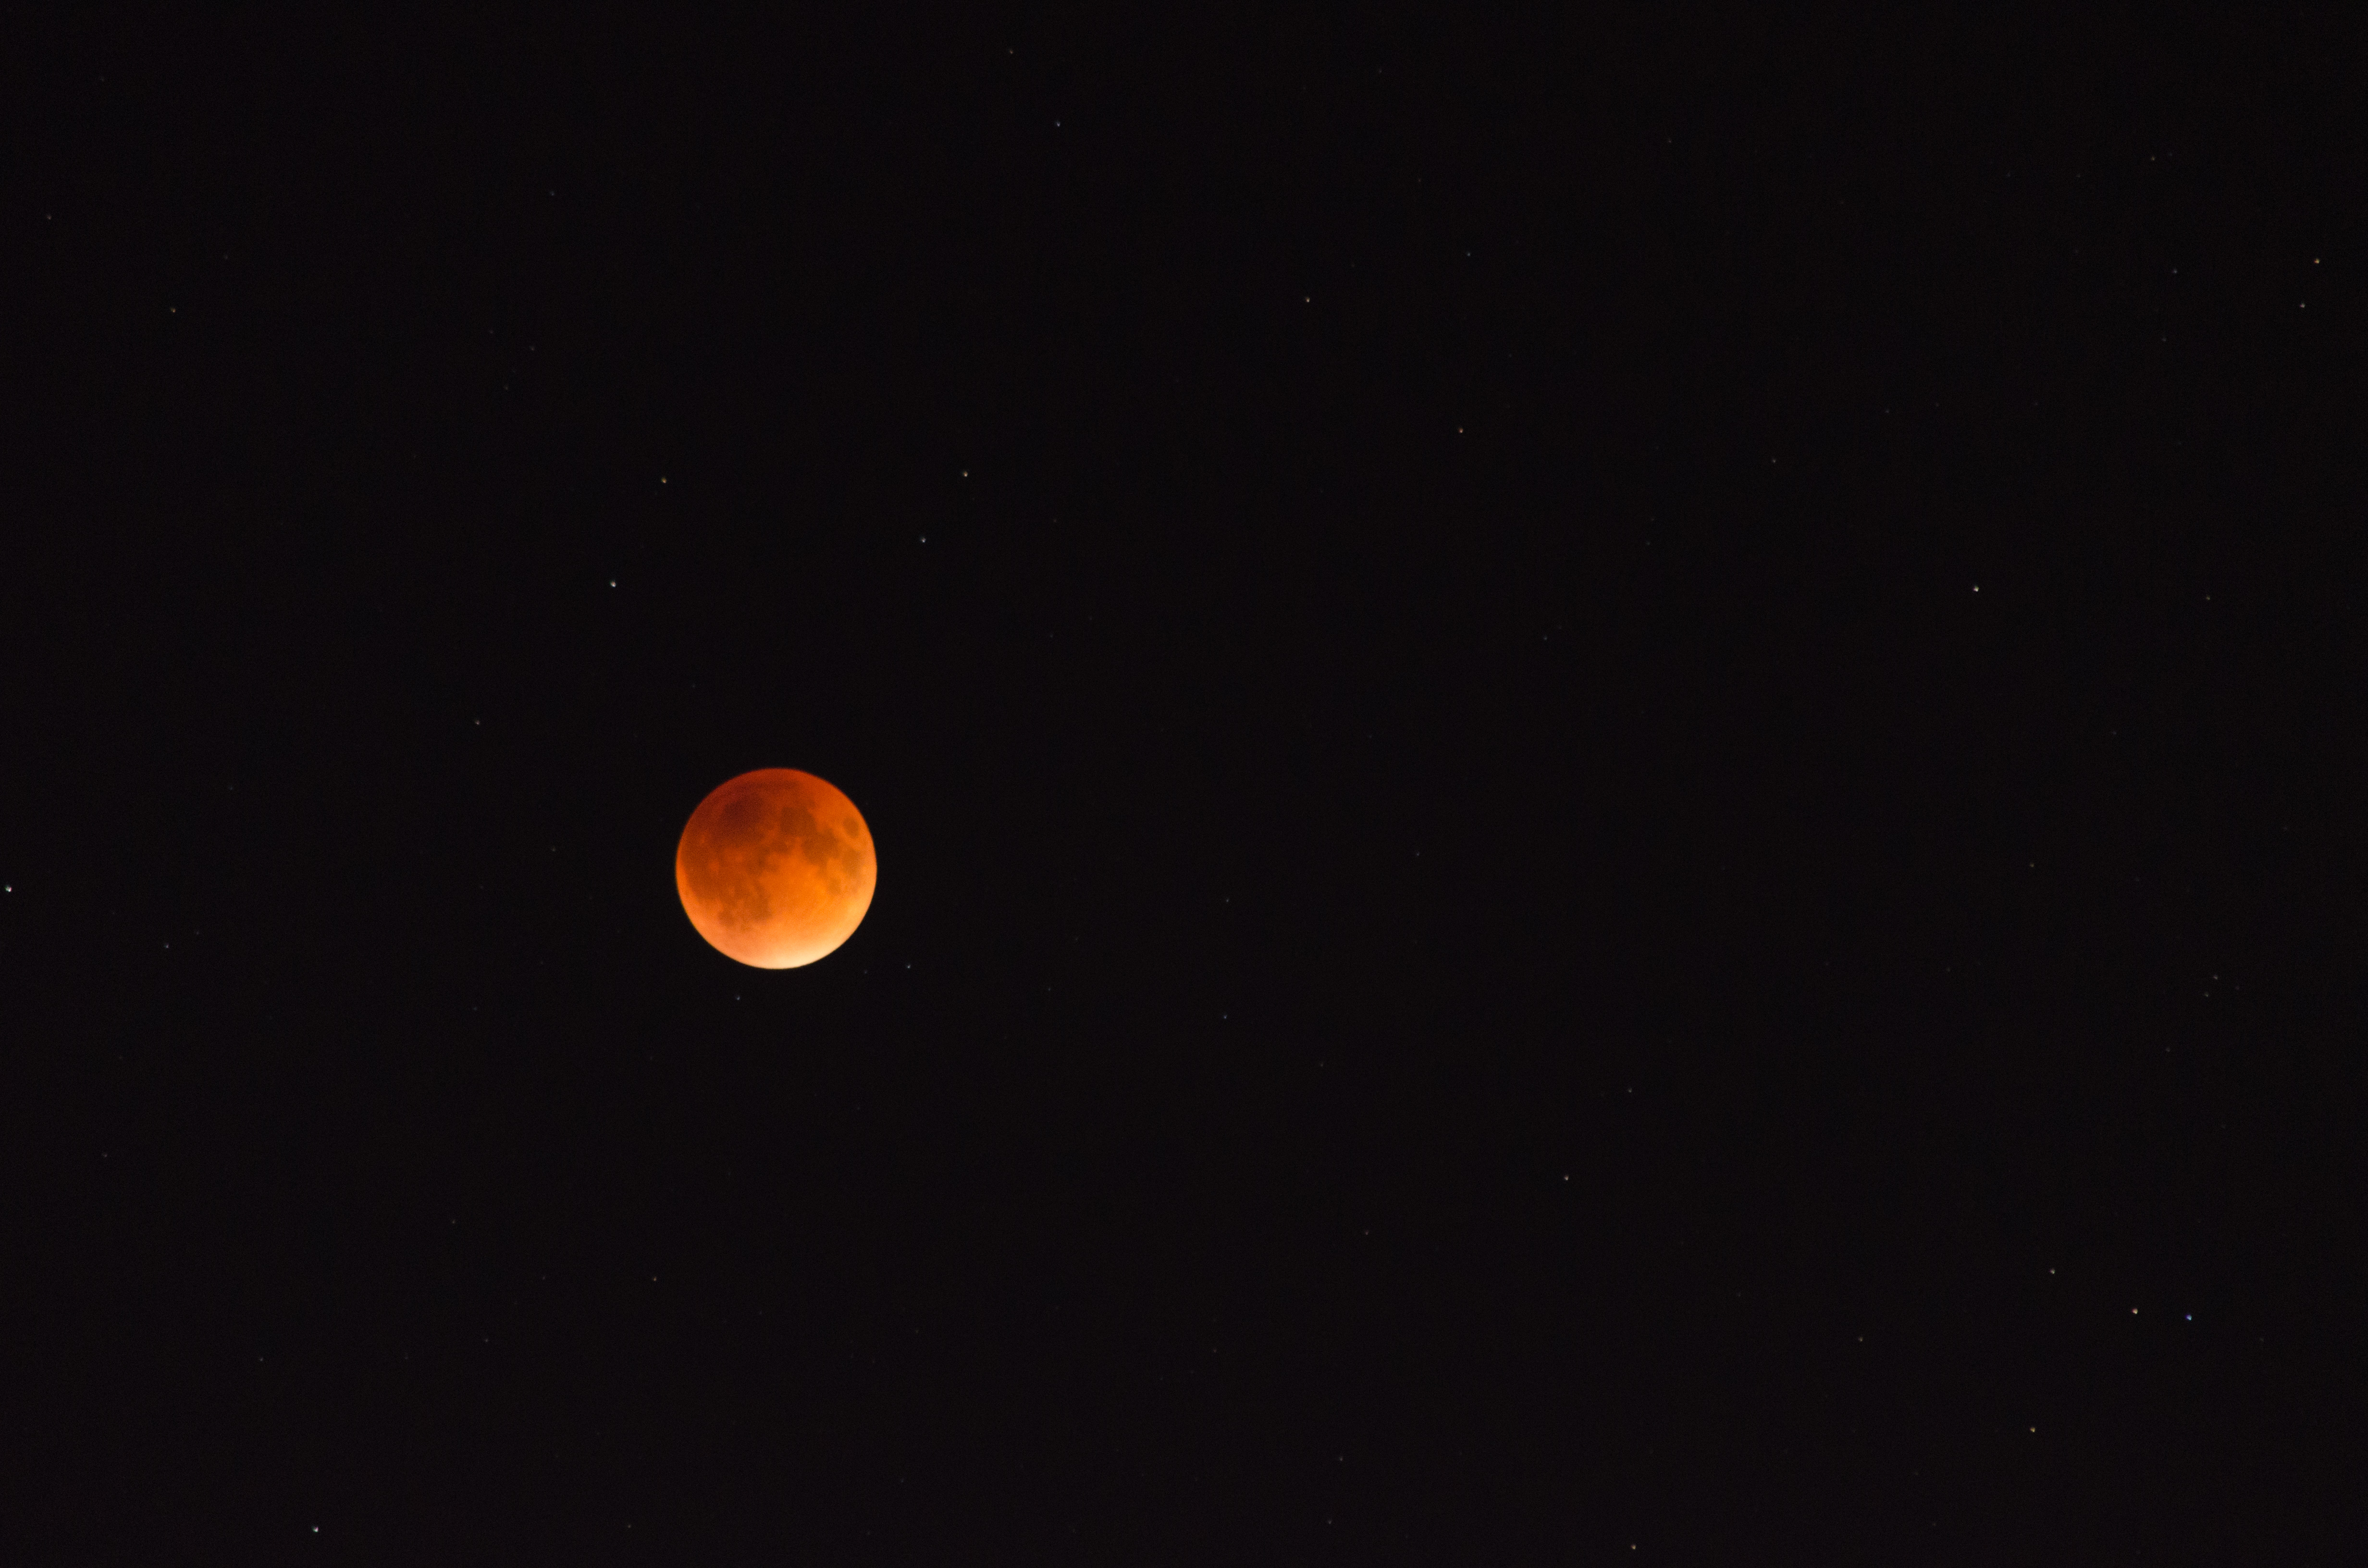 Blood moon eclipse over Boston